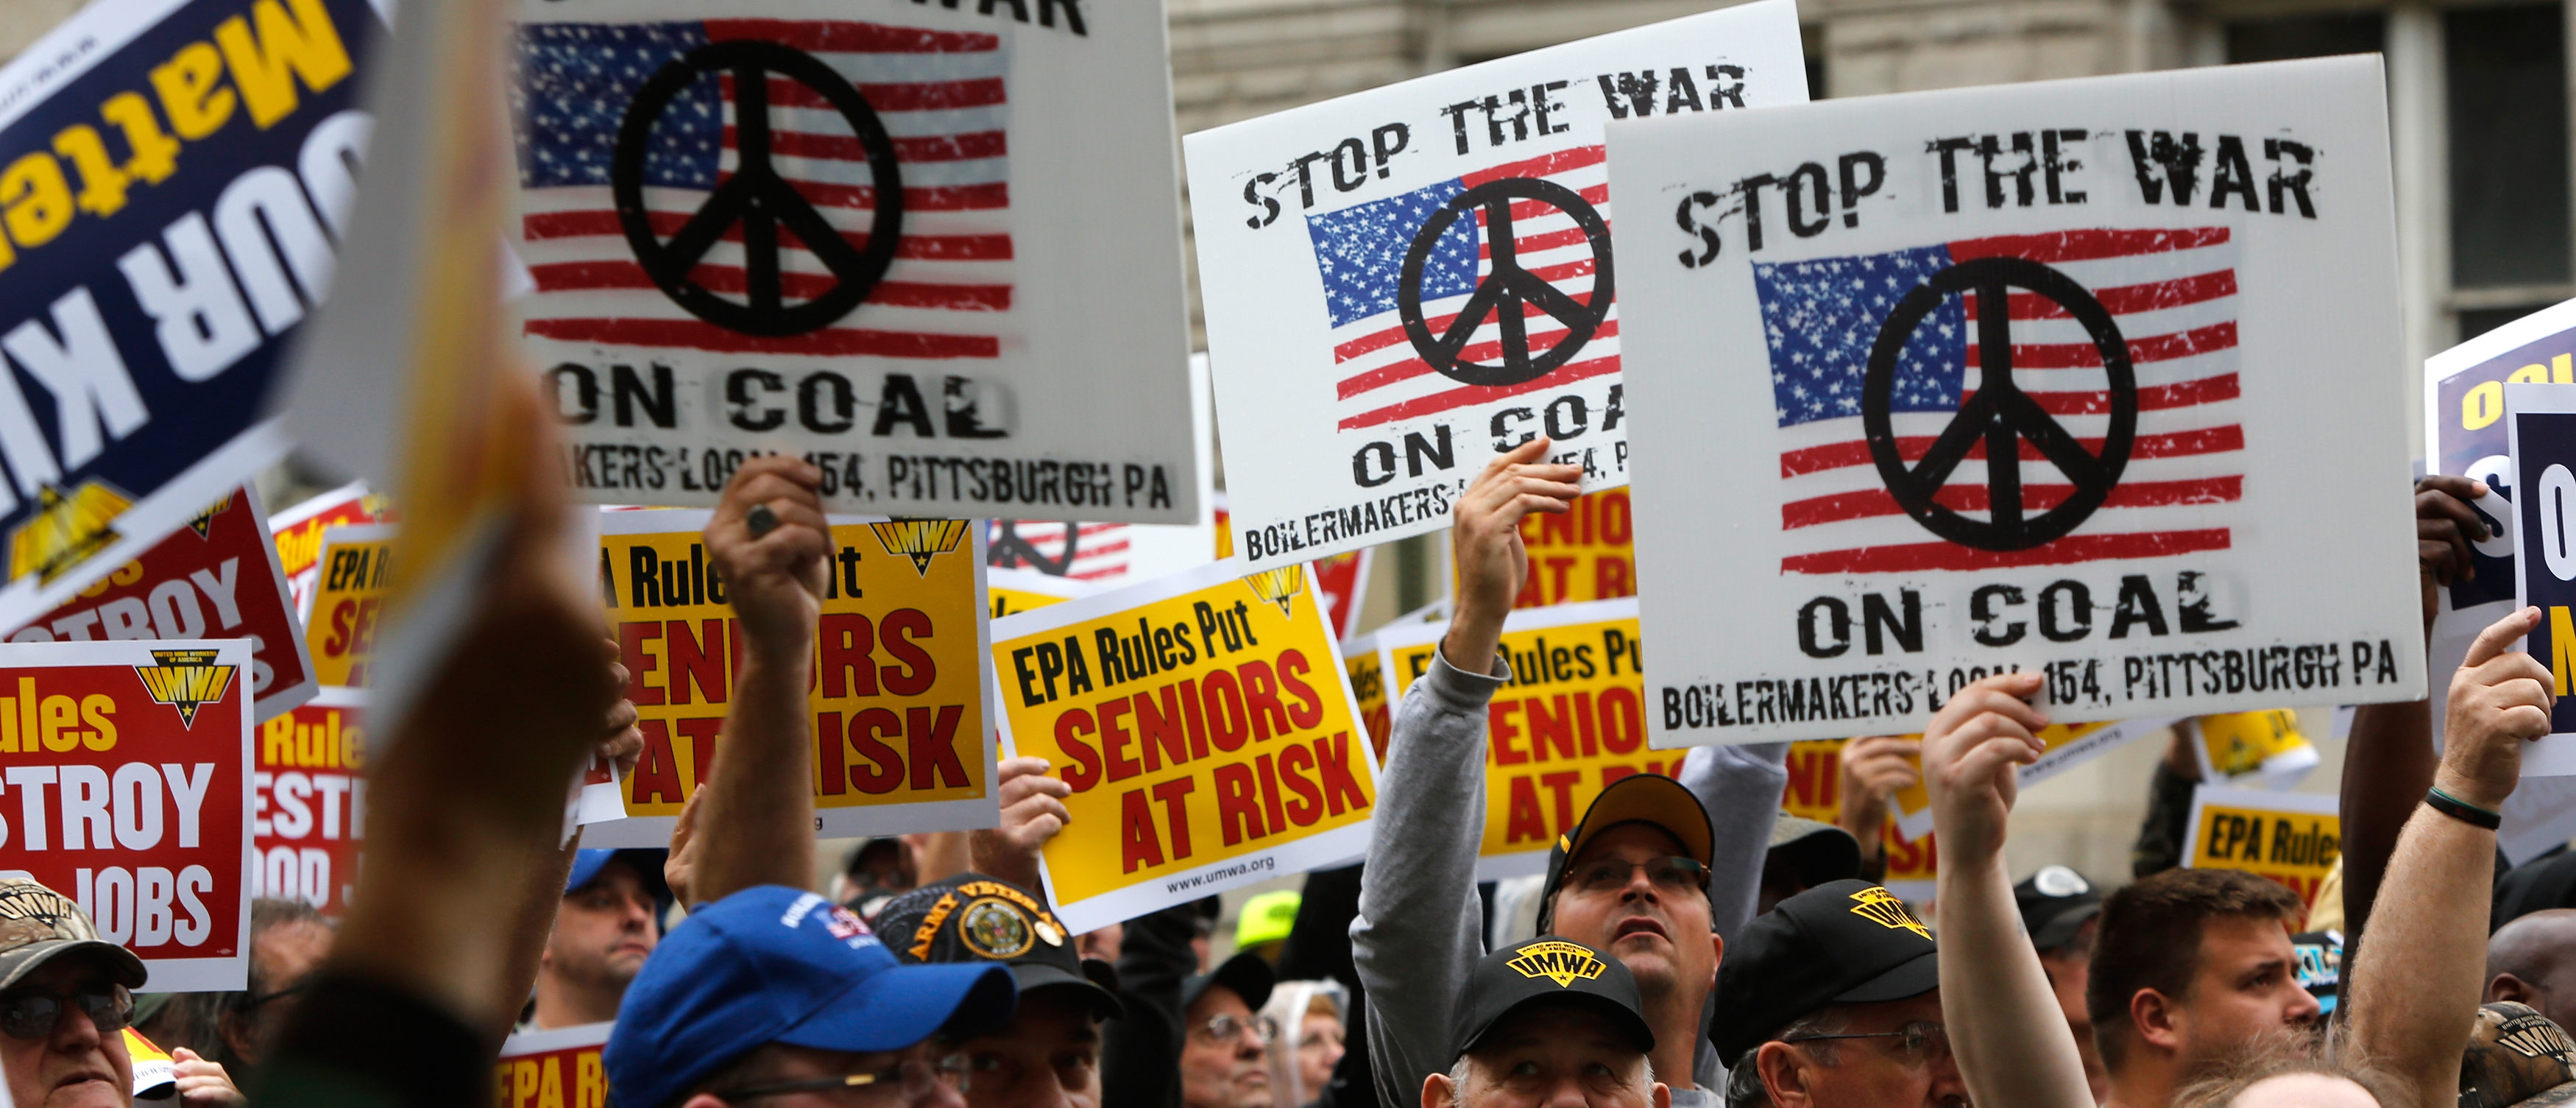 Members of United Mine Workers of America hold a rally outside the U.S. Environmental Protection Agency (EPA) headquarters in Washington October 7, 2014. The coal miner's union members rallied against proposed EPA Clean Power Plan rules, which the union claims will eliminate thousands of coal industry-related jobs. REUTERS/Jonathan Ernst